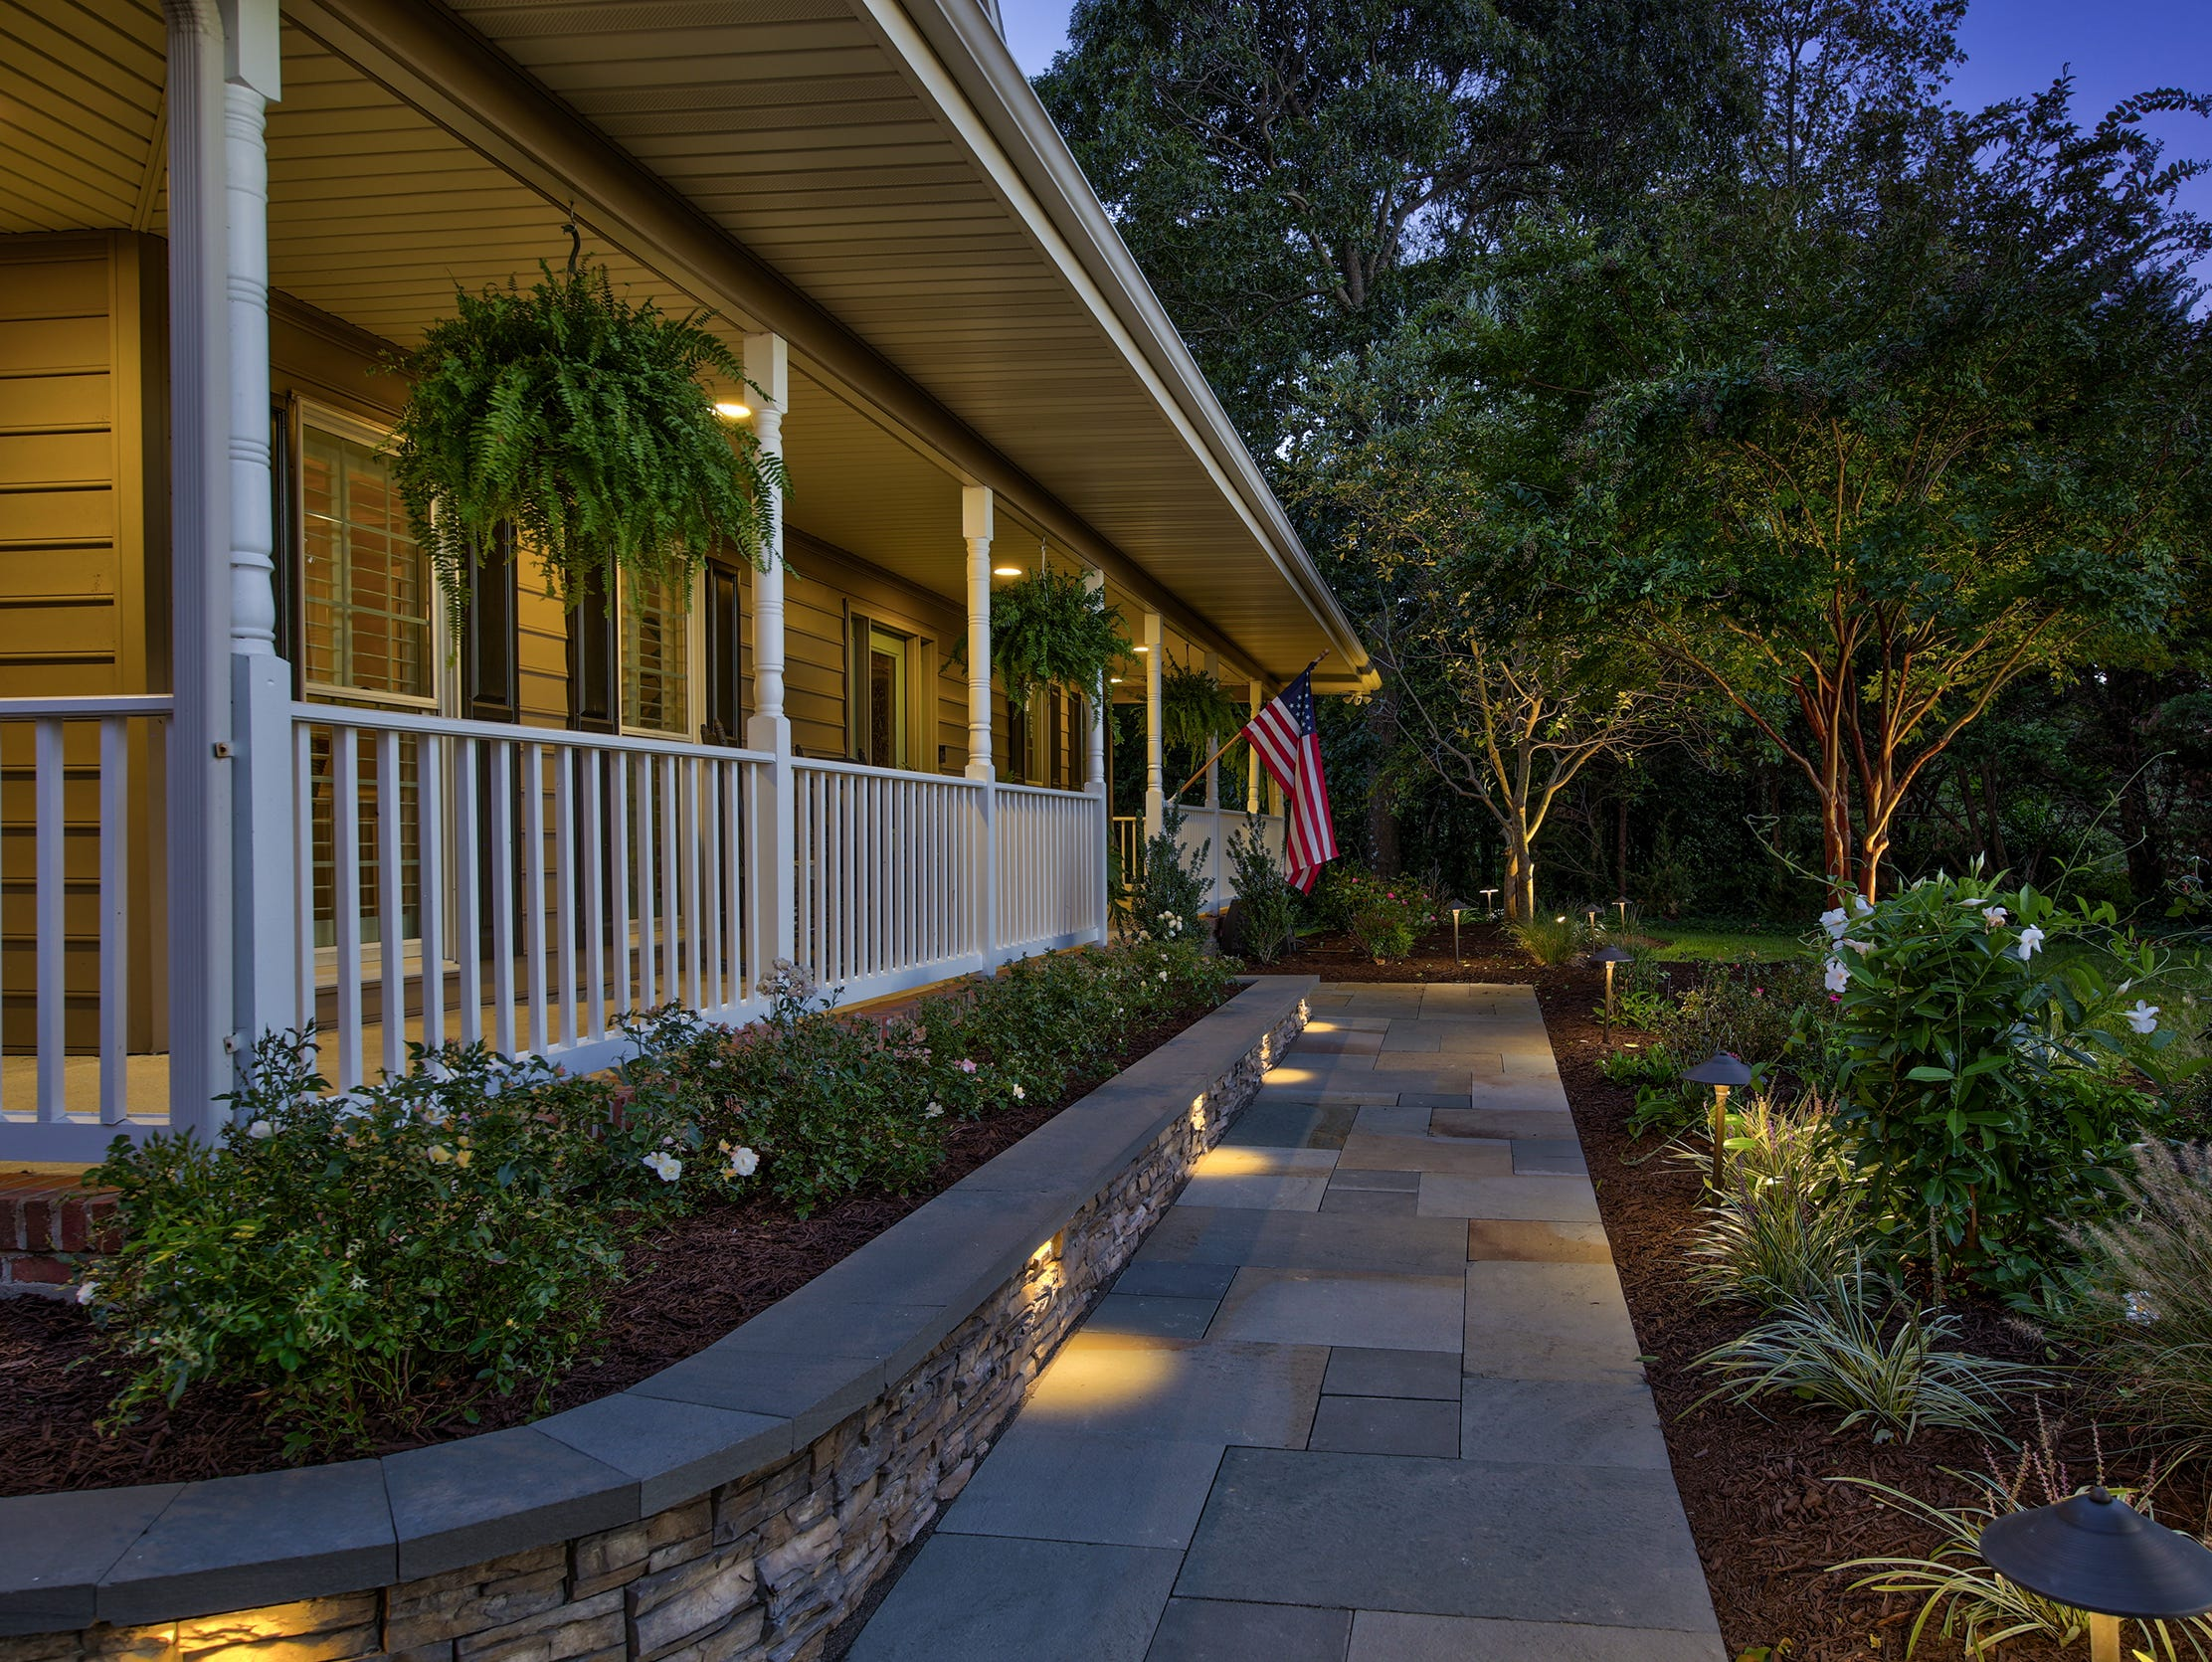 The house at 204 Lakeview Shores features a wrap-around porch, lighted stone walkways and newly redone driveway.